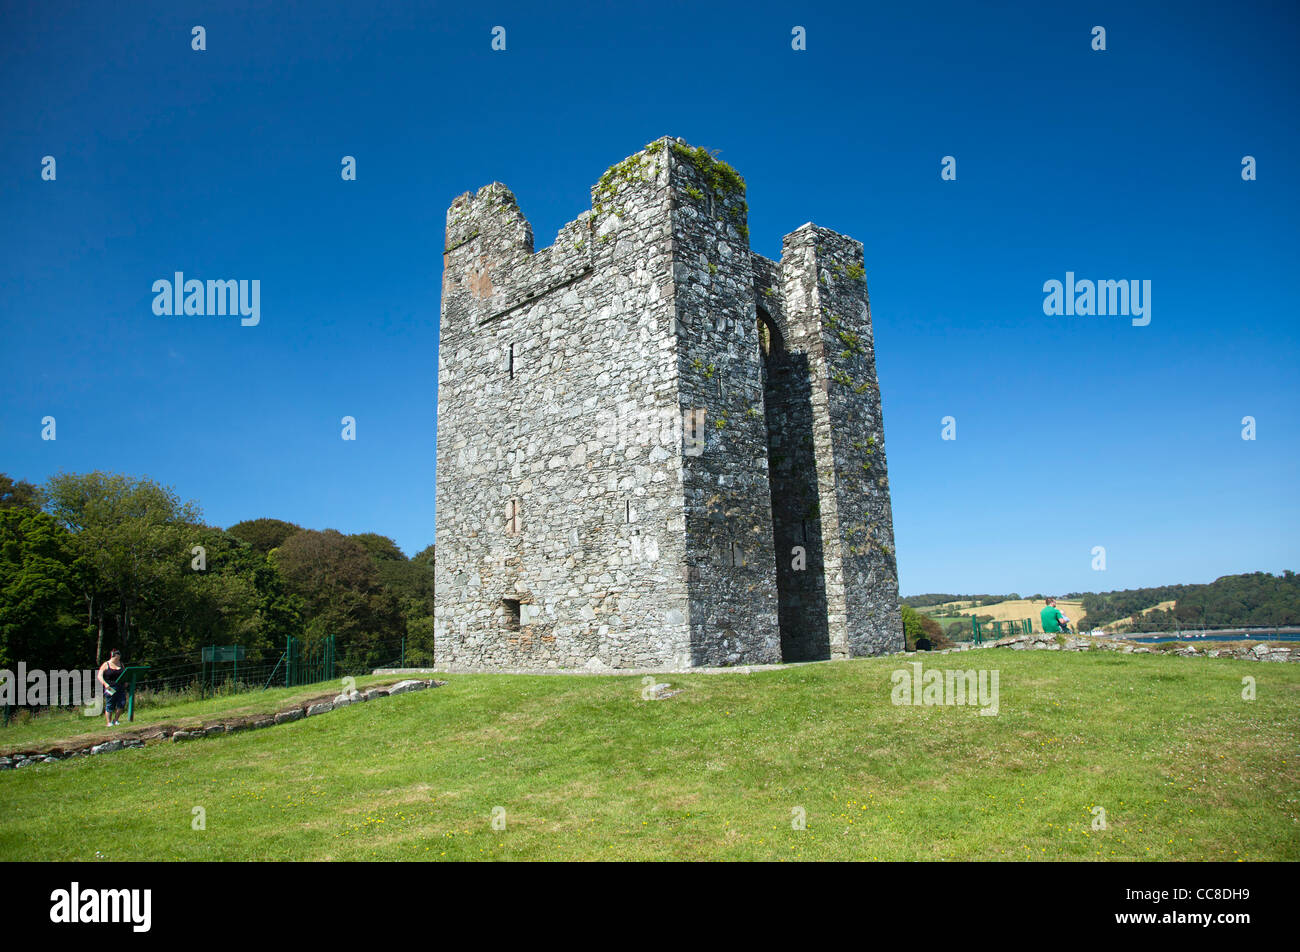 The 15th century tower house of Audley's Castle, Castle Ward Estate, County Down, Northern Ireland. - Stock Image